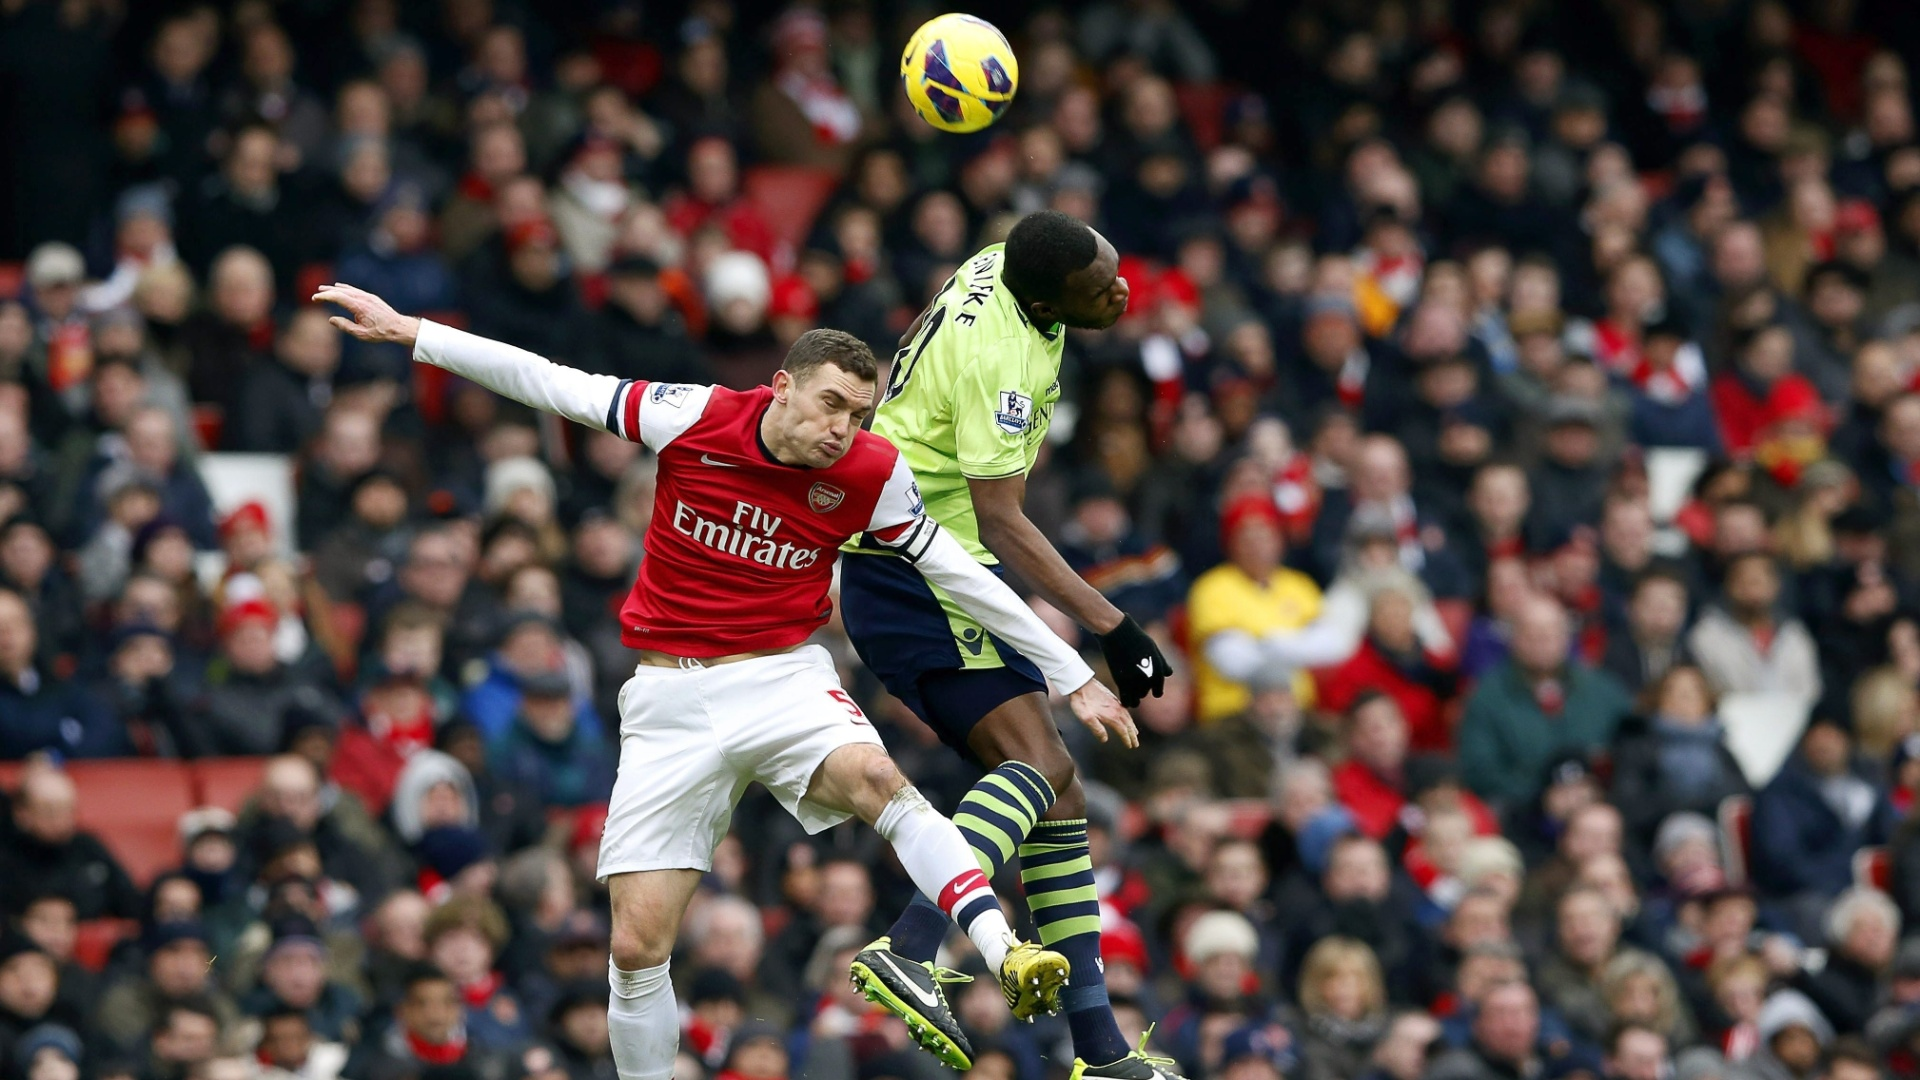 23.fev.2013 - Vermaelen (esq.), do Arsenal, disputa bola no alto com Christian Benteke, do Aston Villa